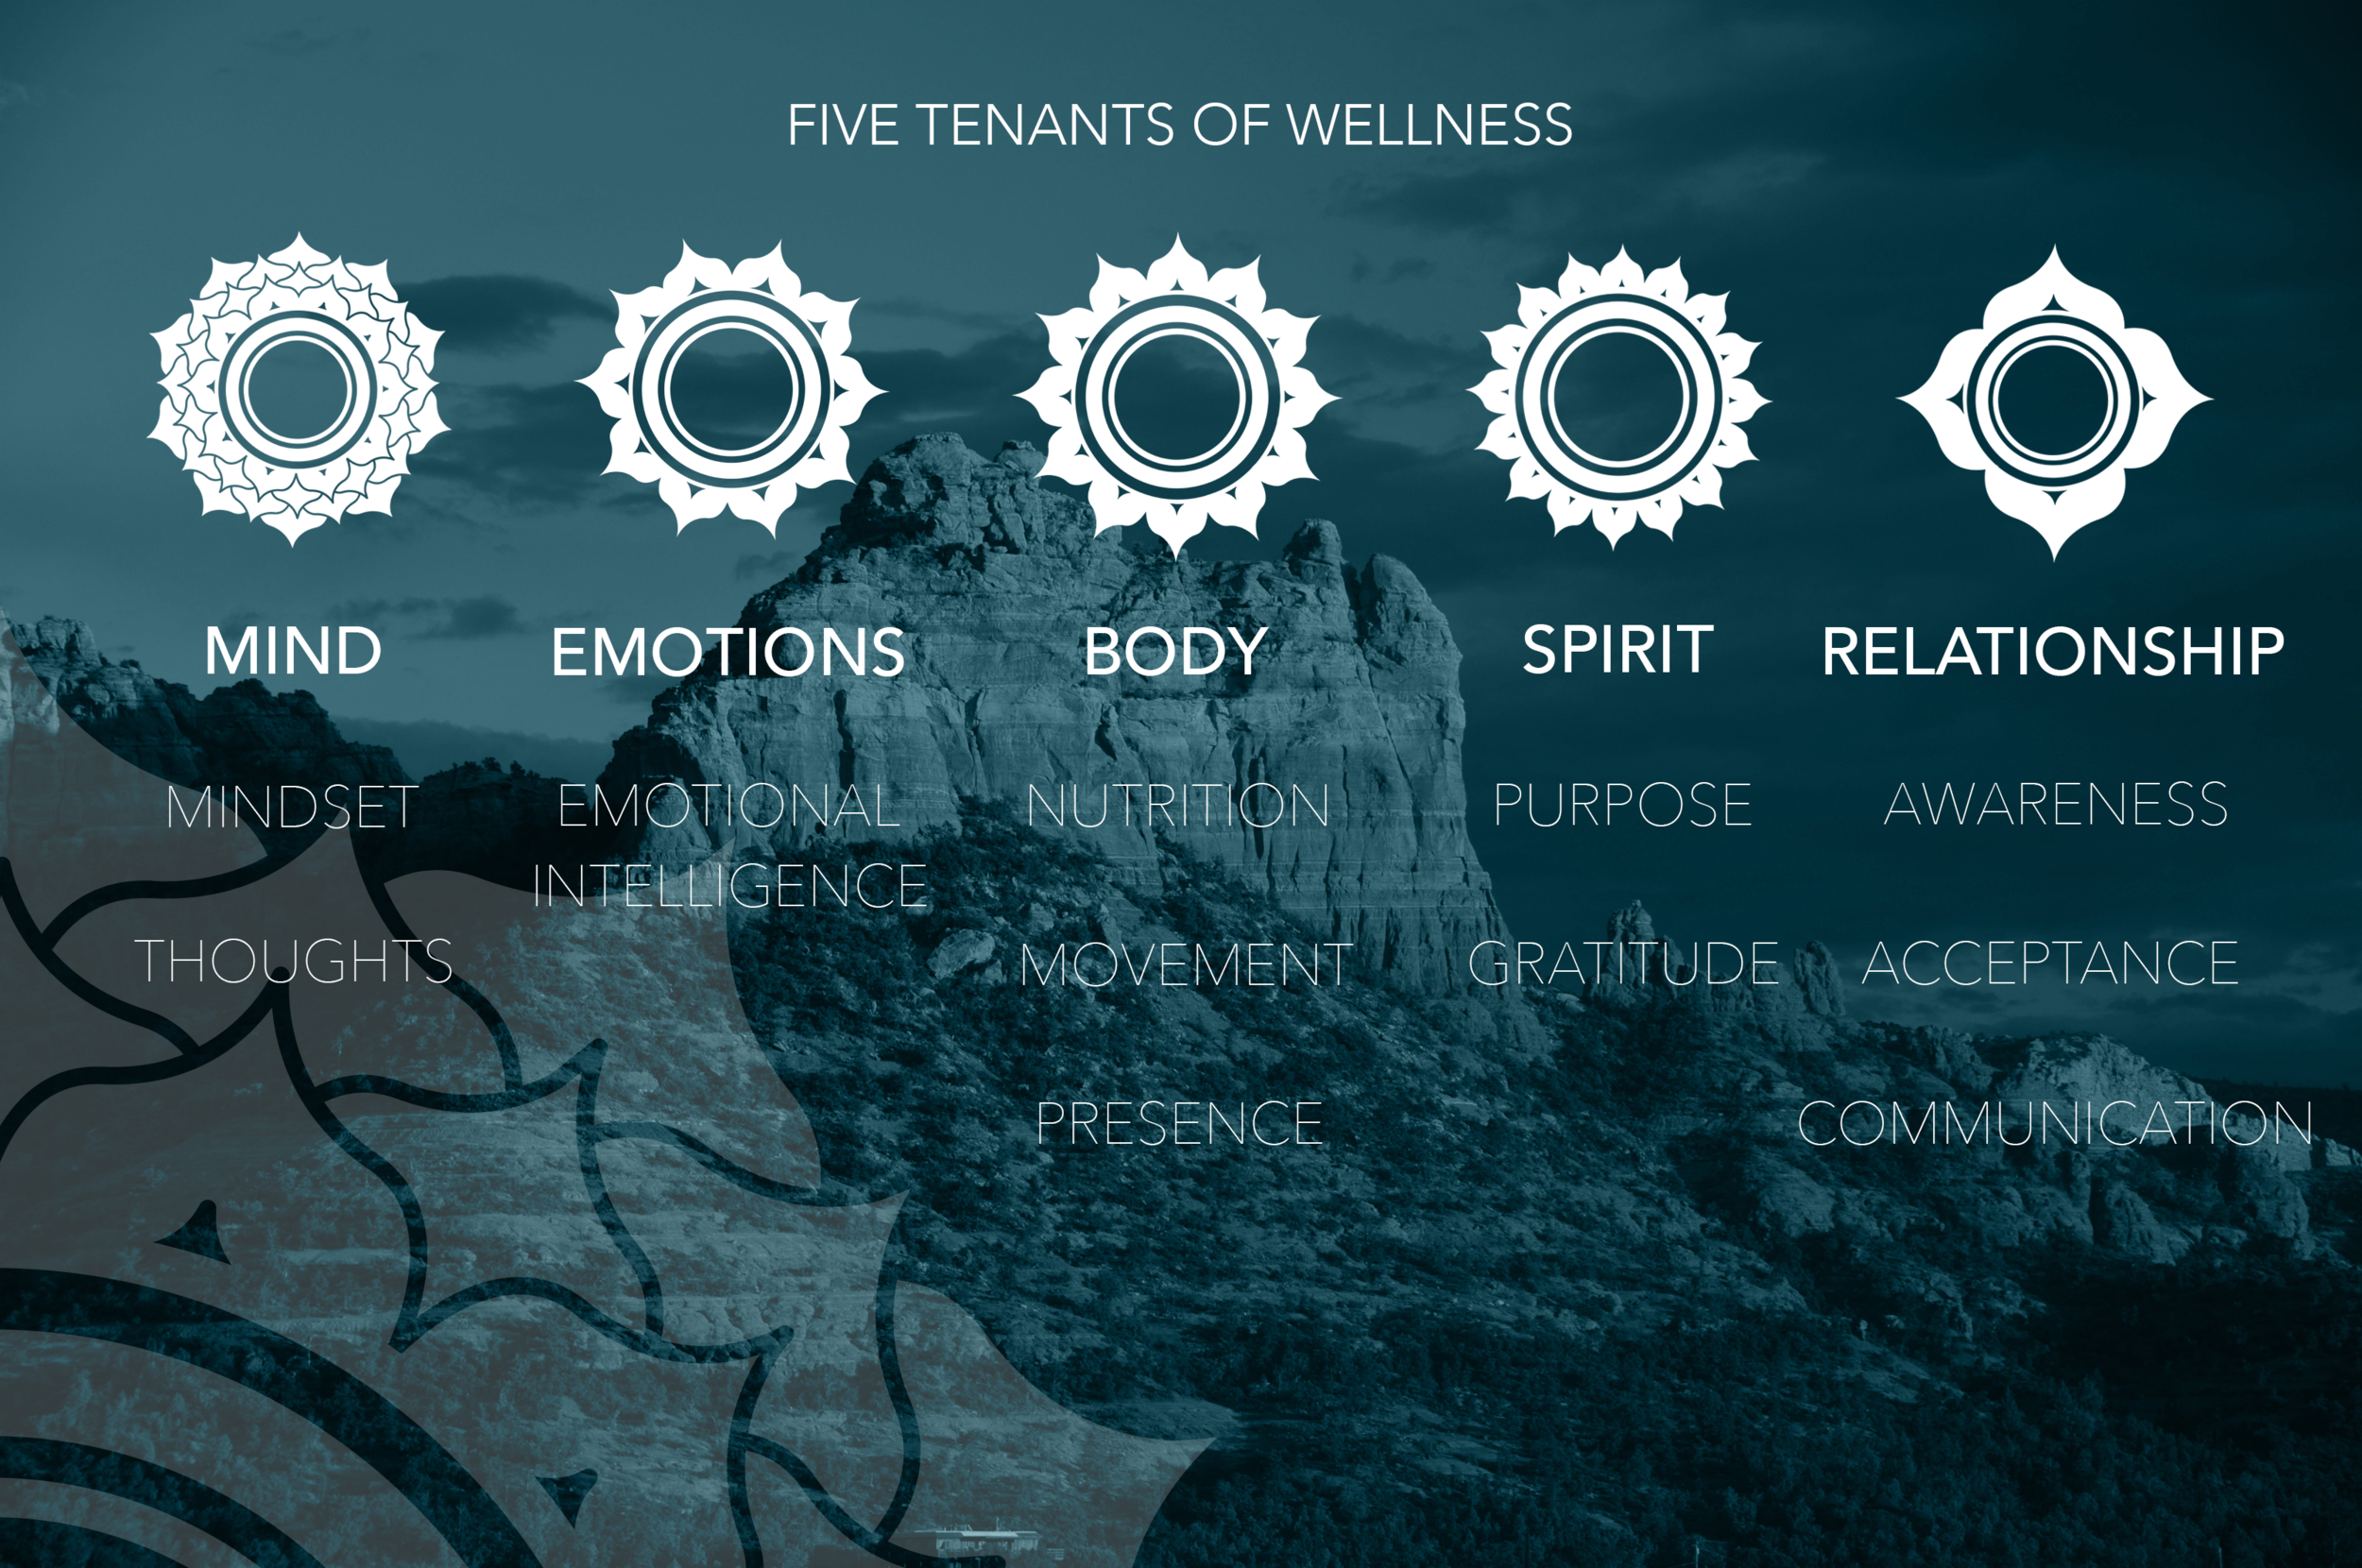 The 5 tenant model is the original work of Dr. Suzanne Nixon and is comprised of the belief that Whole Health, Whole Being, is comprised of all aspects of the self: Mind, Emotions, Body, Spirit and Relationships.